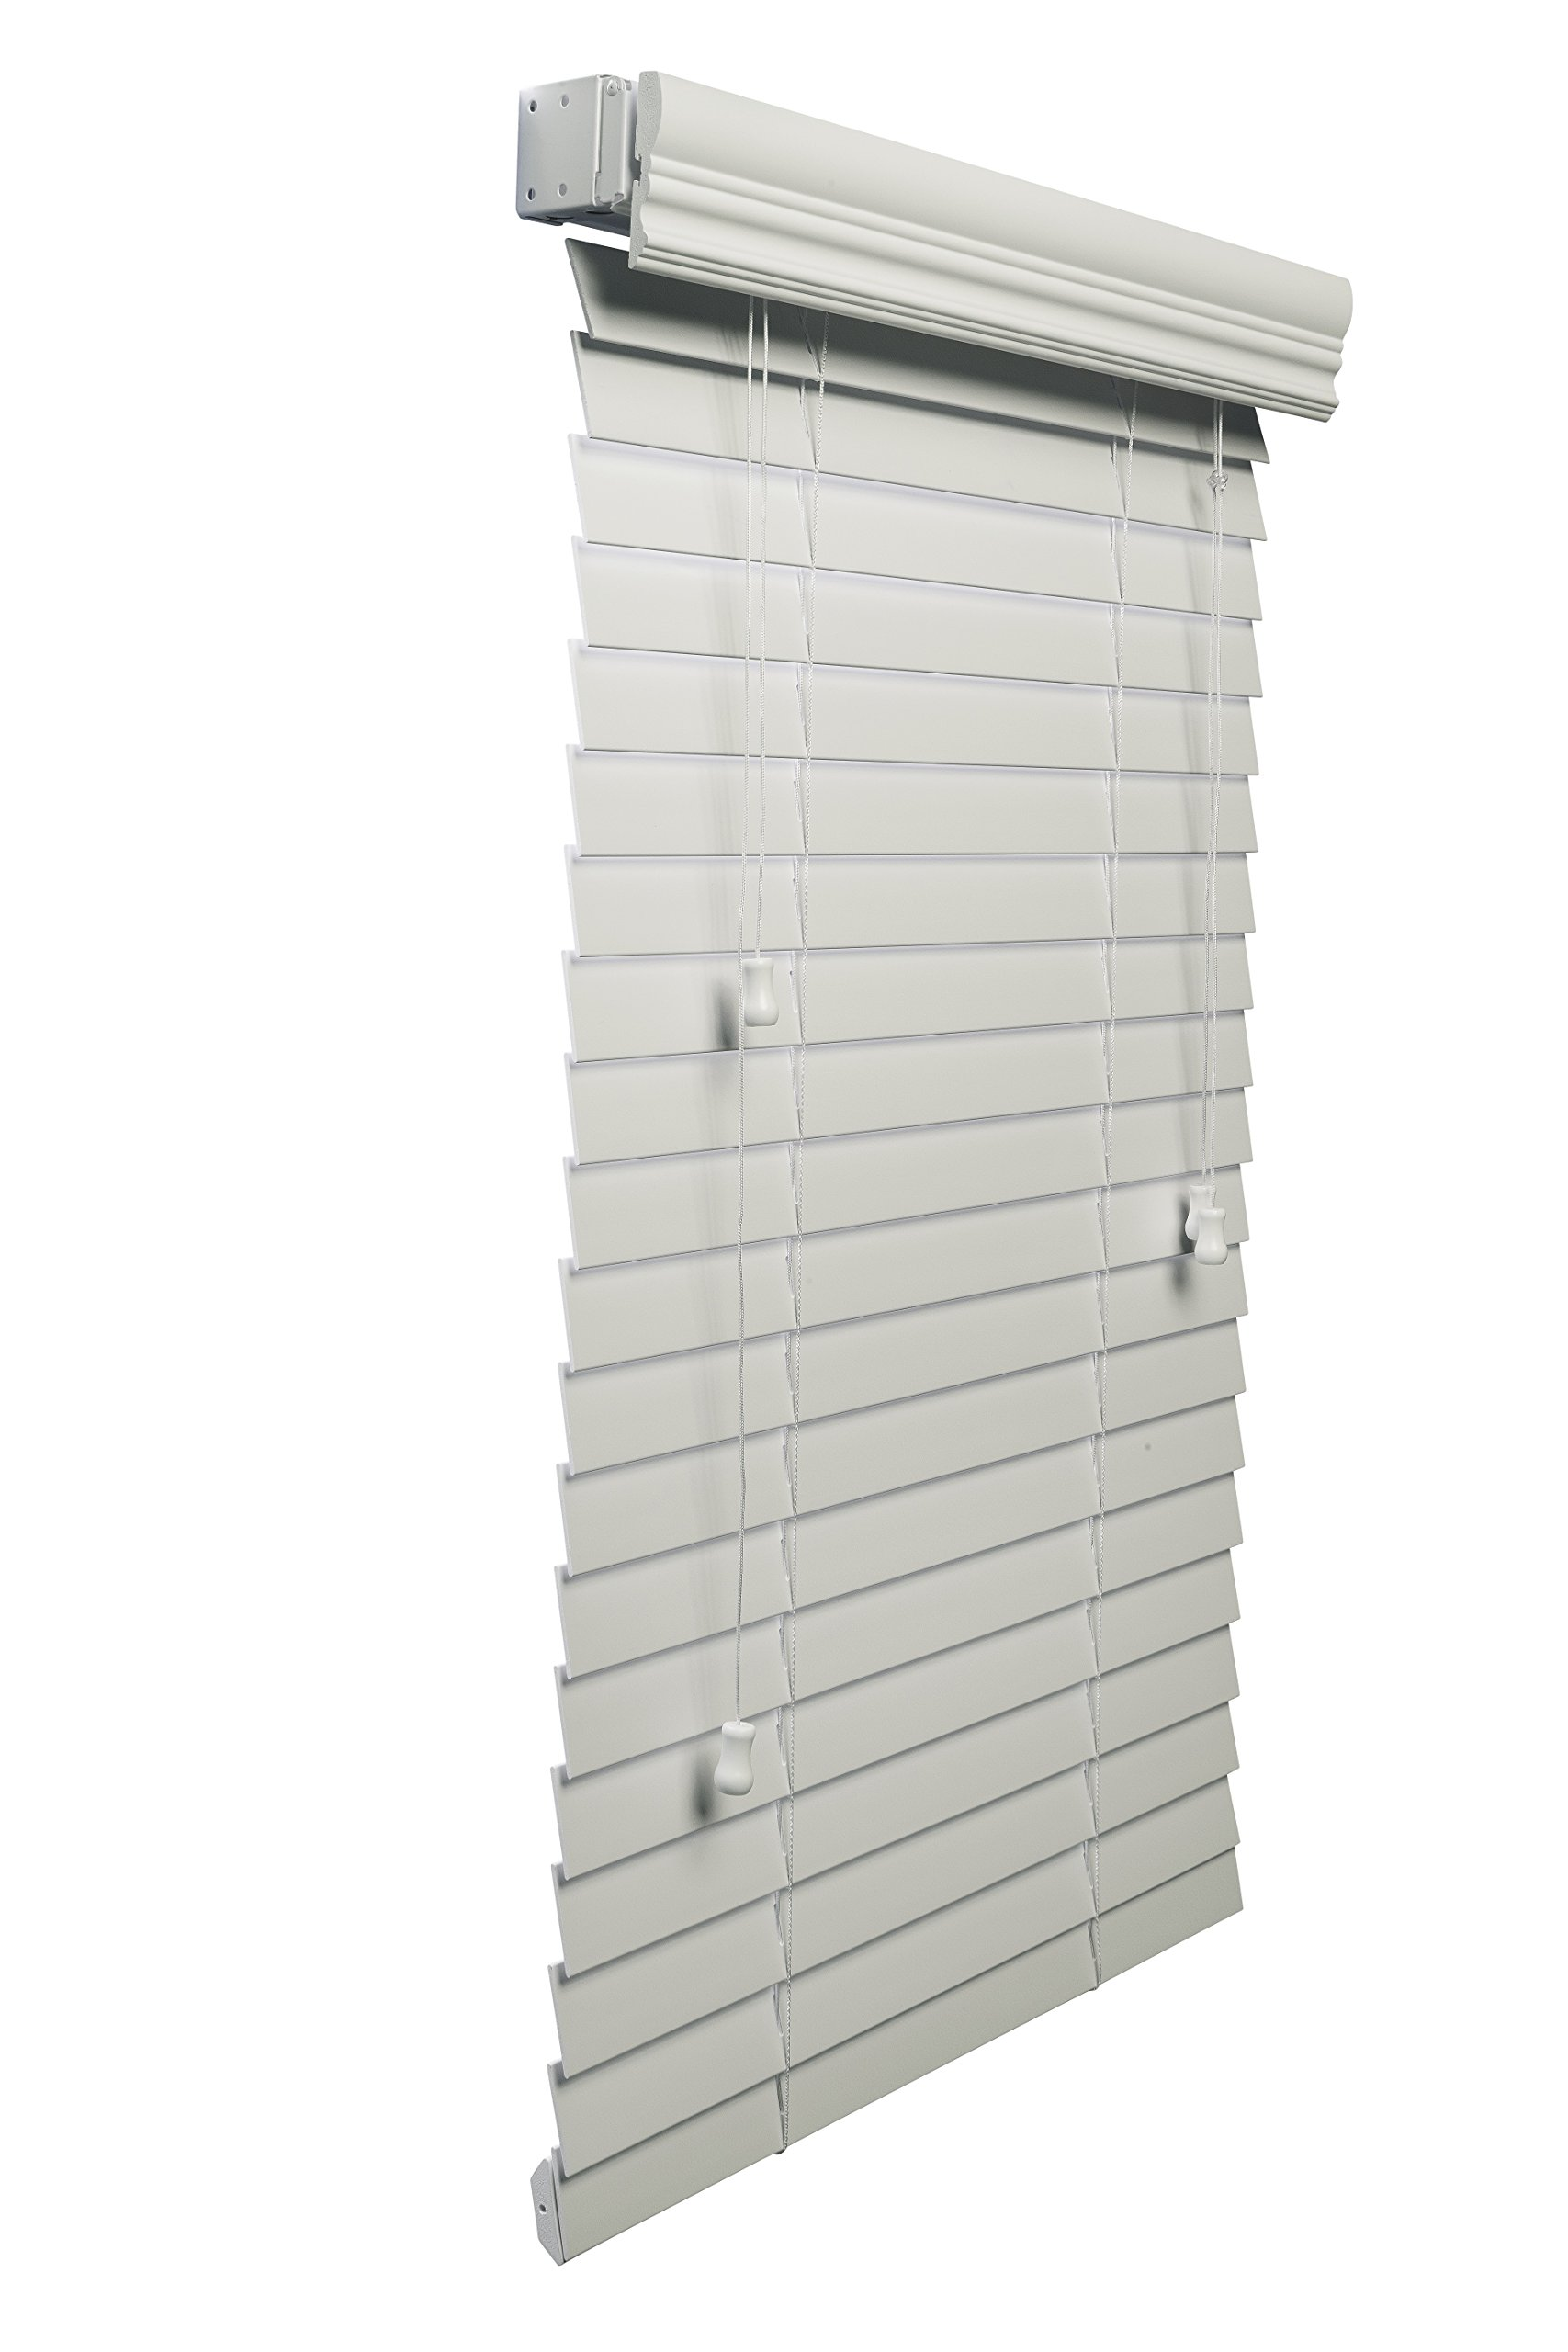 Lotus & Windoware 2-Inch Faux Wood Blind, 16 by 72-Inch, White